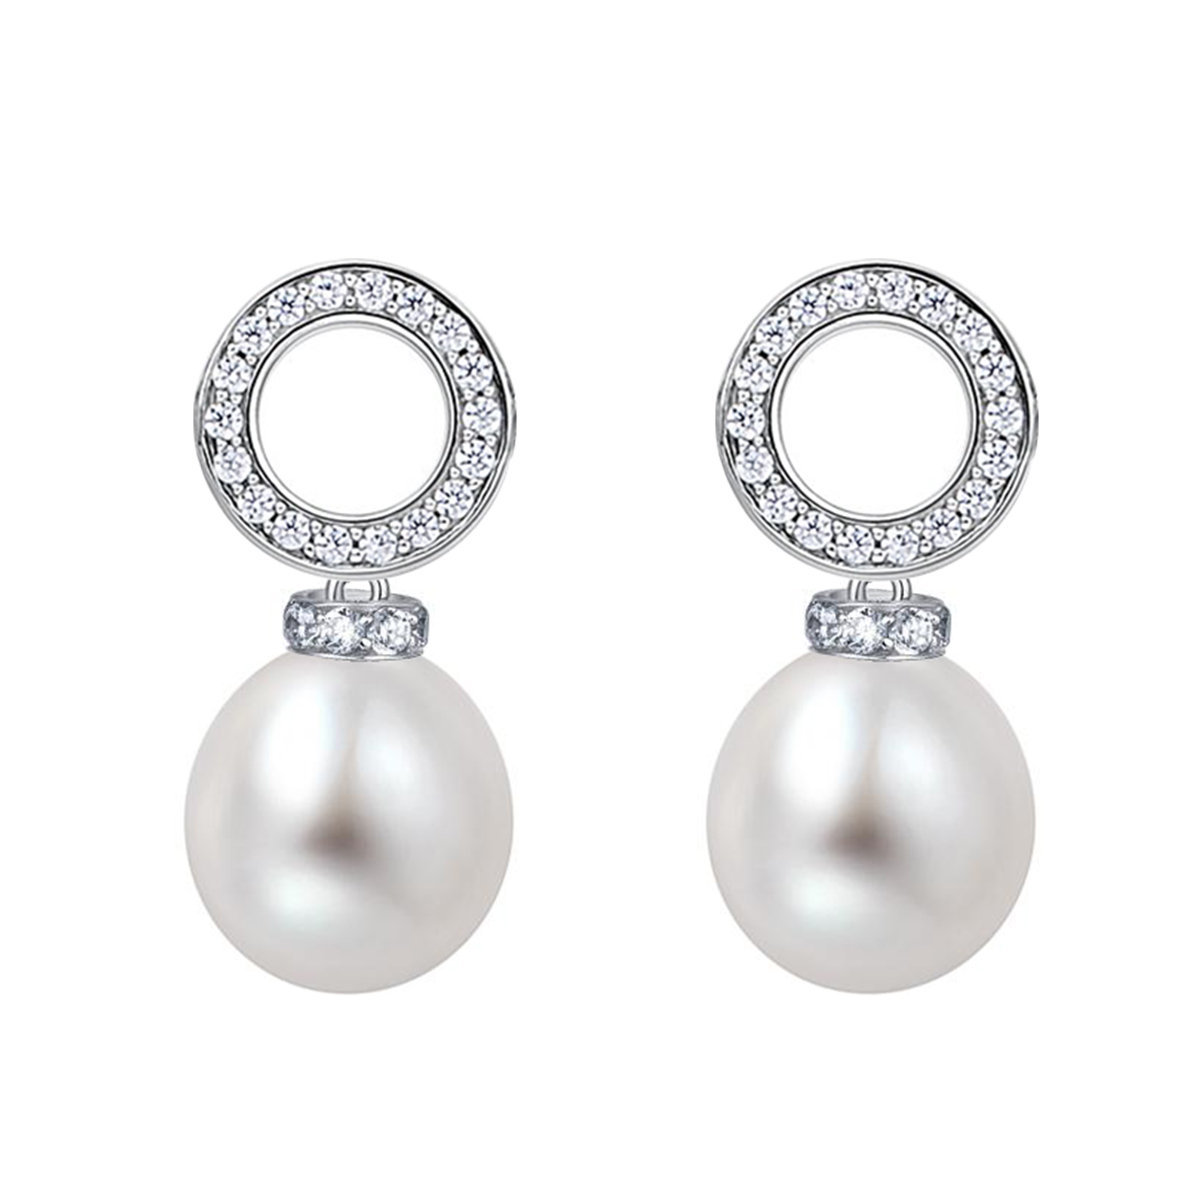 Element- Cultured fresh water pearl with cz mounted 925 silver earring